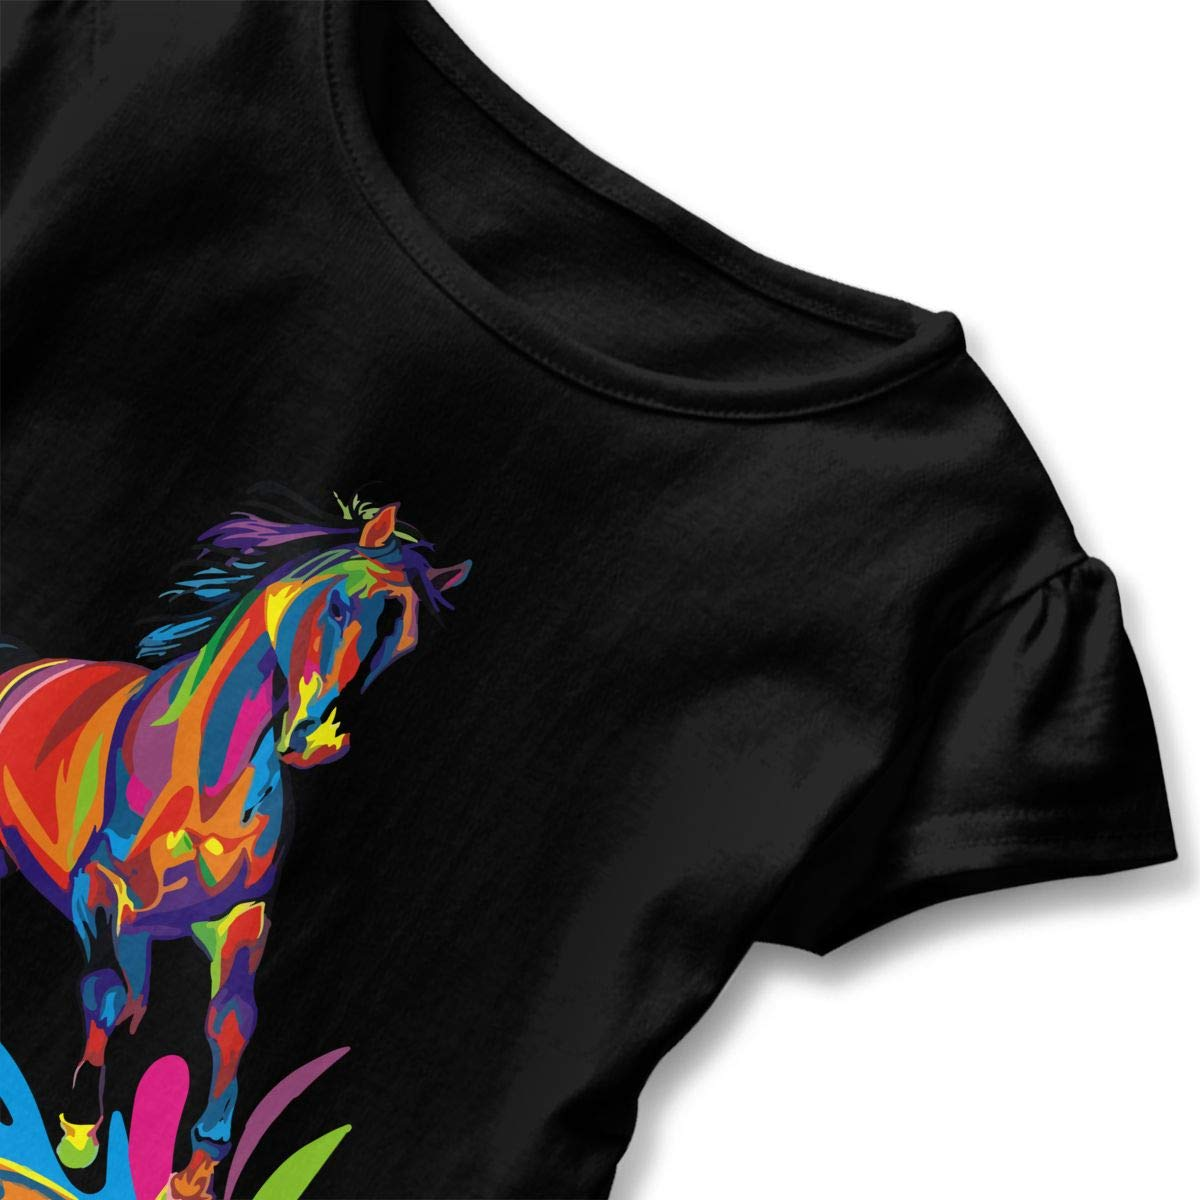 SHIRT1-KIDS The Color of Horses Childrens Girls Short Sleeve T-Shirts Ruffles Shirt Tee for 2-6T